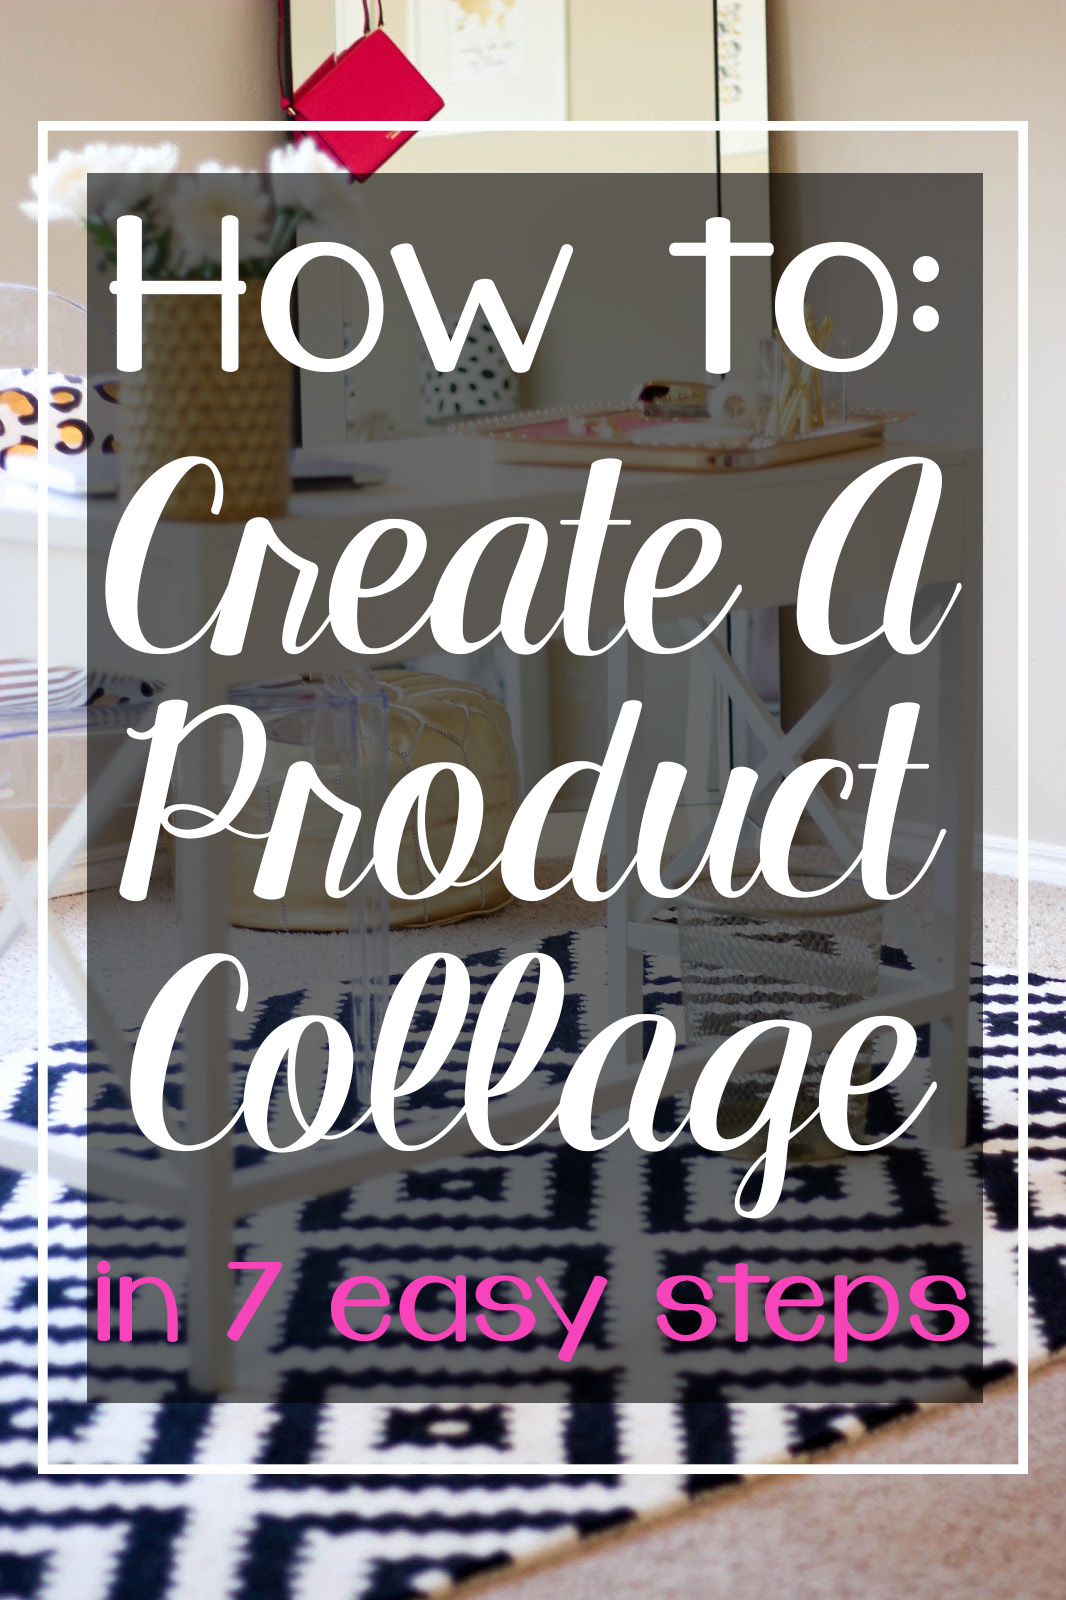 Blogging Tip: Create A Product Collage in 7 Easy Steps | Styled Blonde